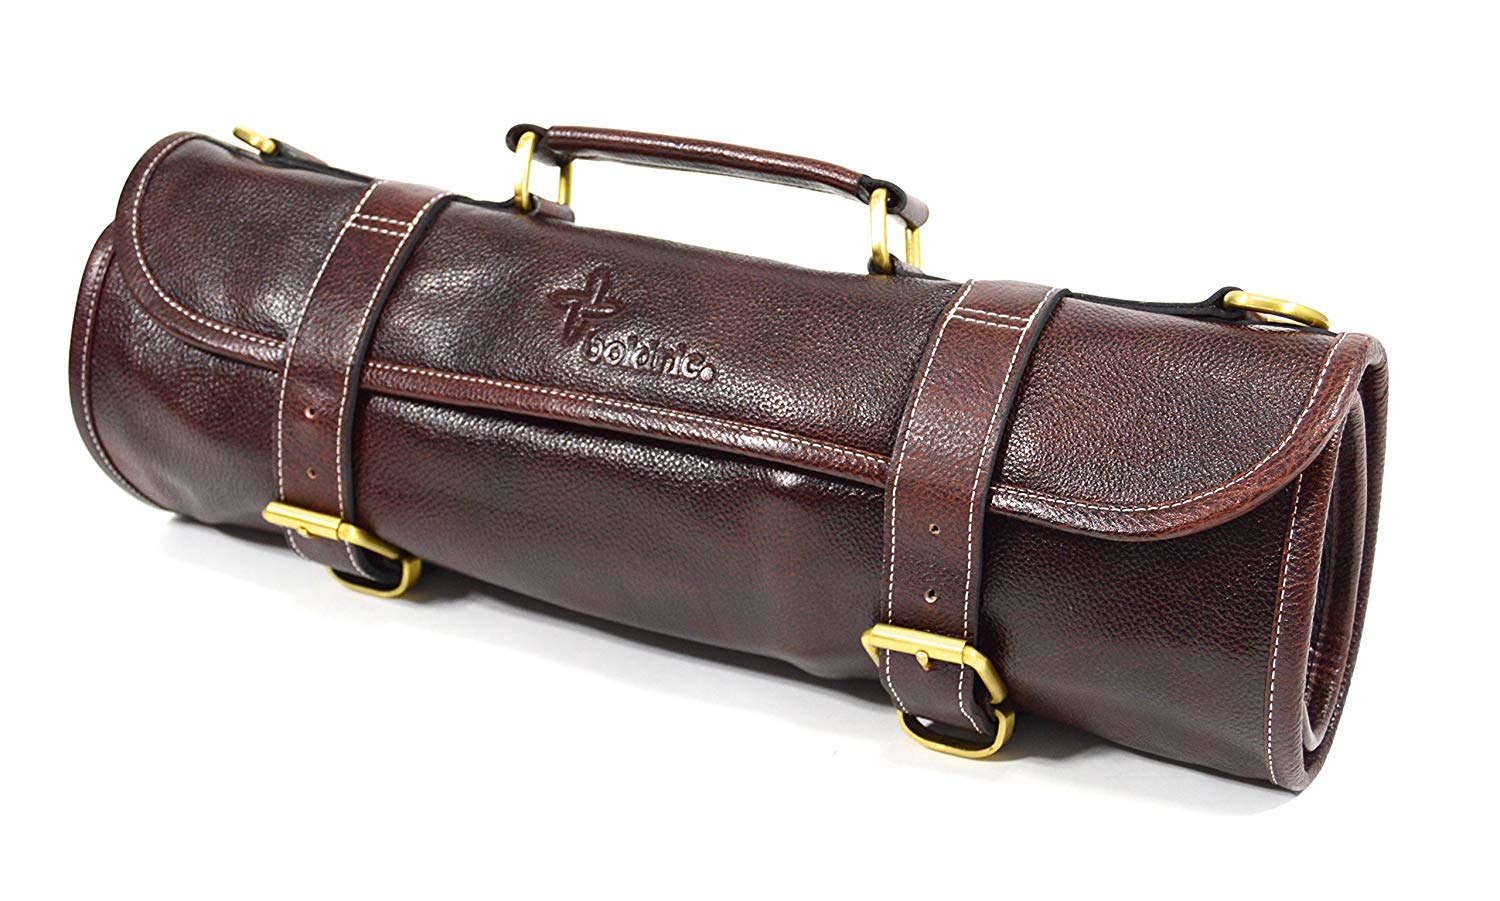 9748ed7334 Get Quotations · Boldric 9 Pocket Leather Chef Knife Roll Bag With Shoulder  Strap – Professional Water Buffalo Hide